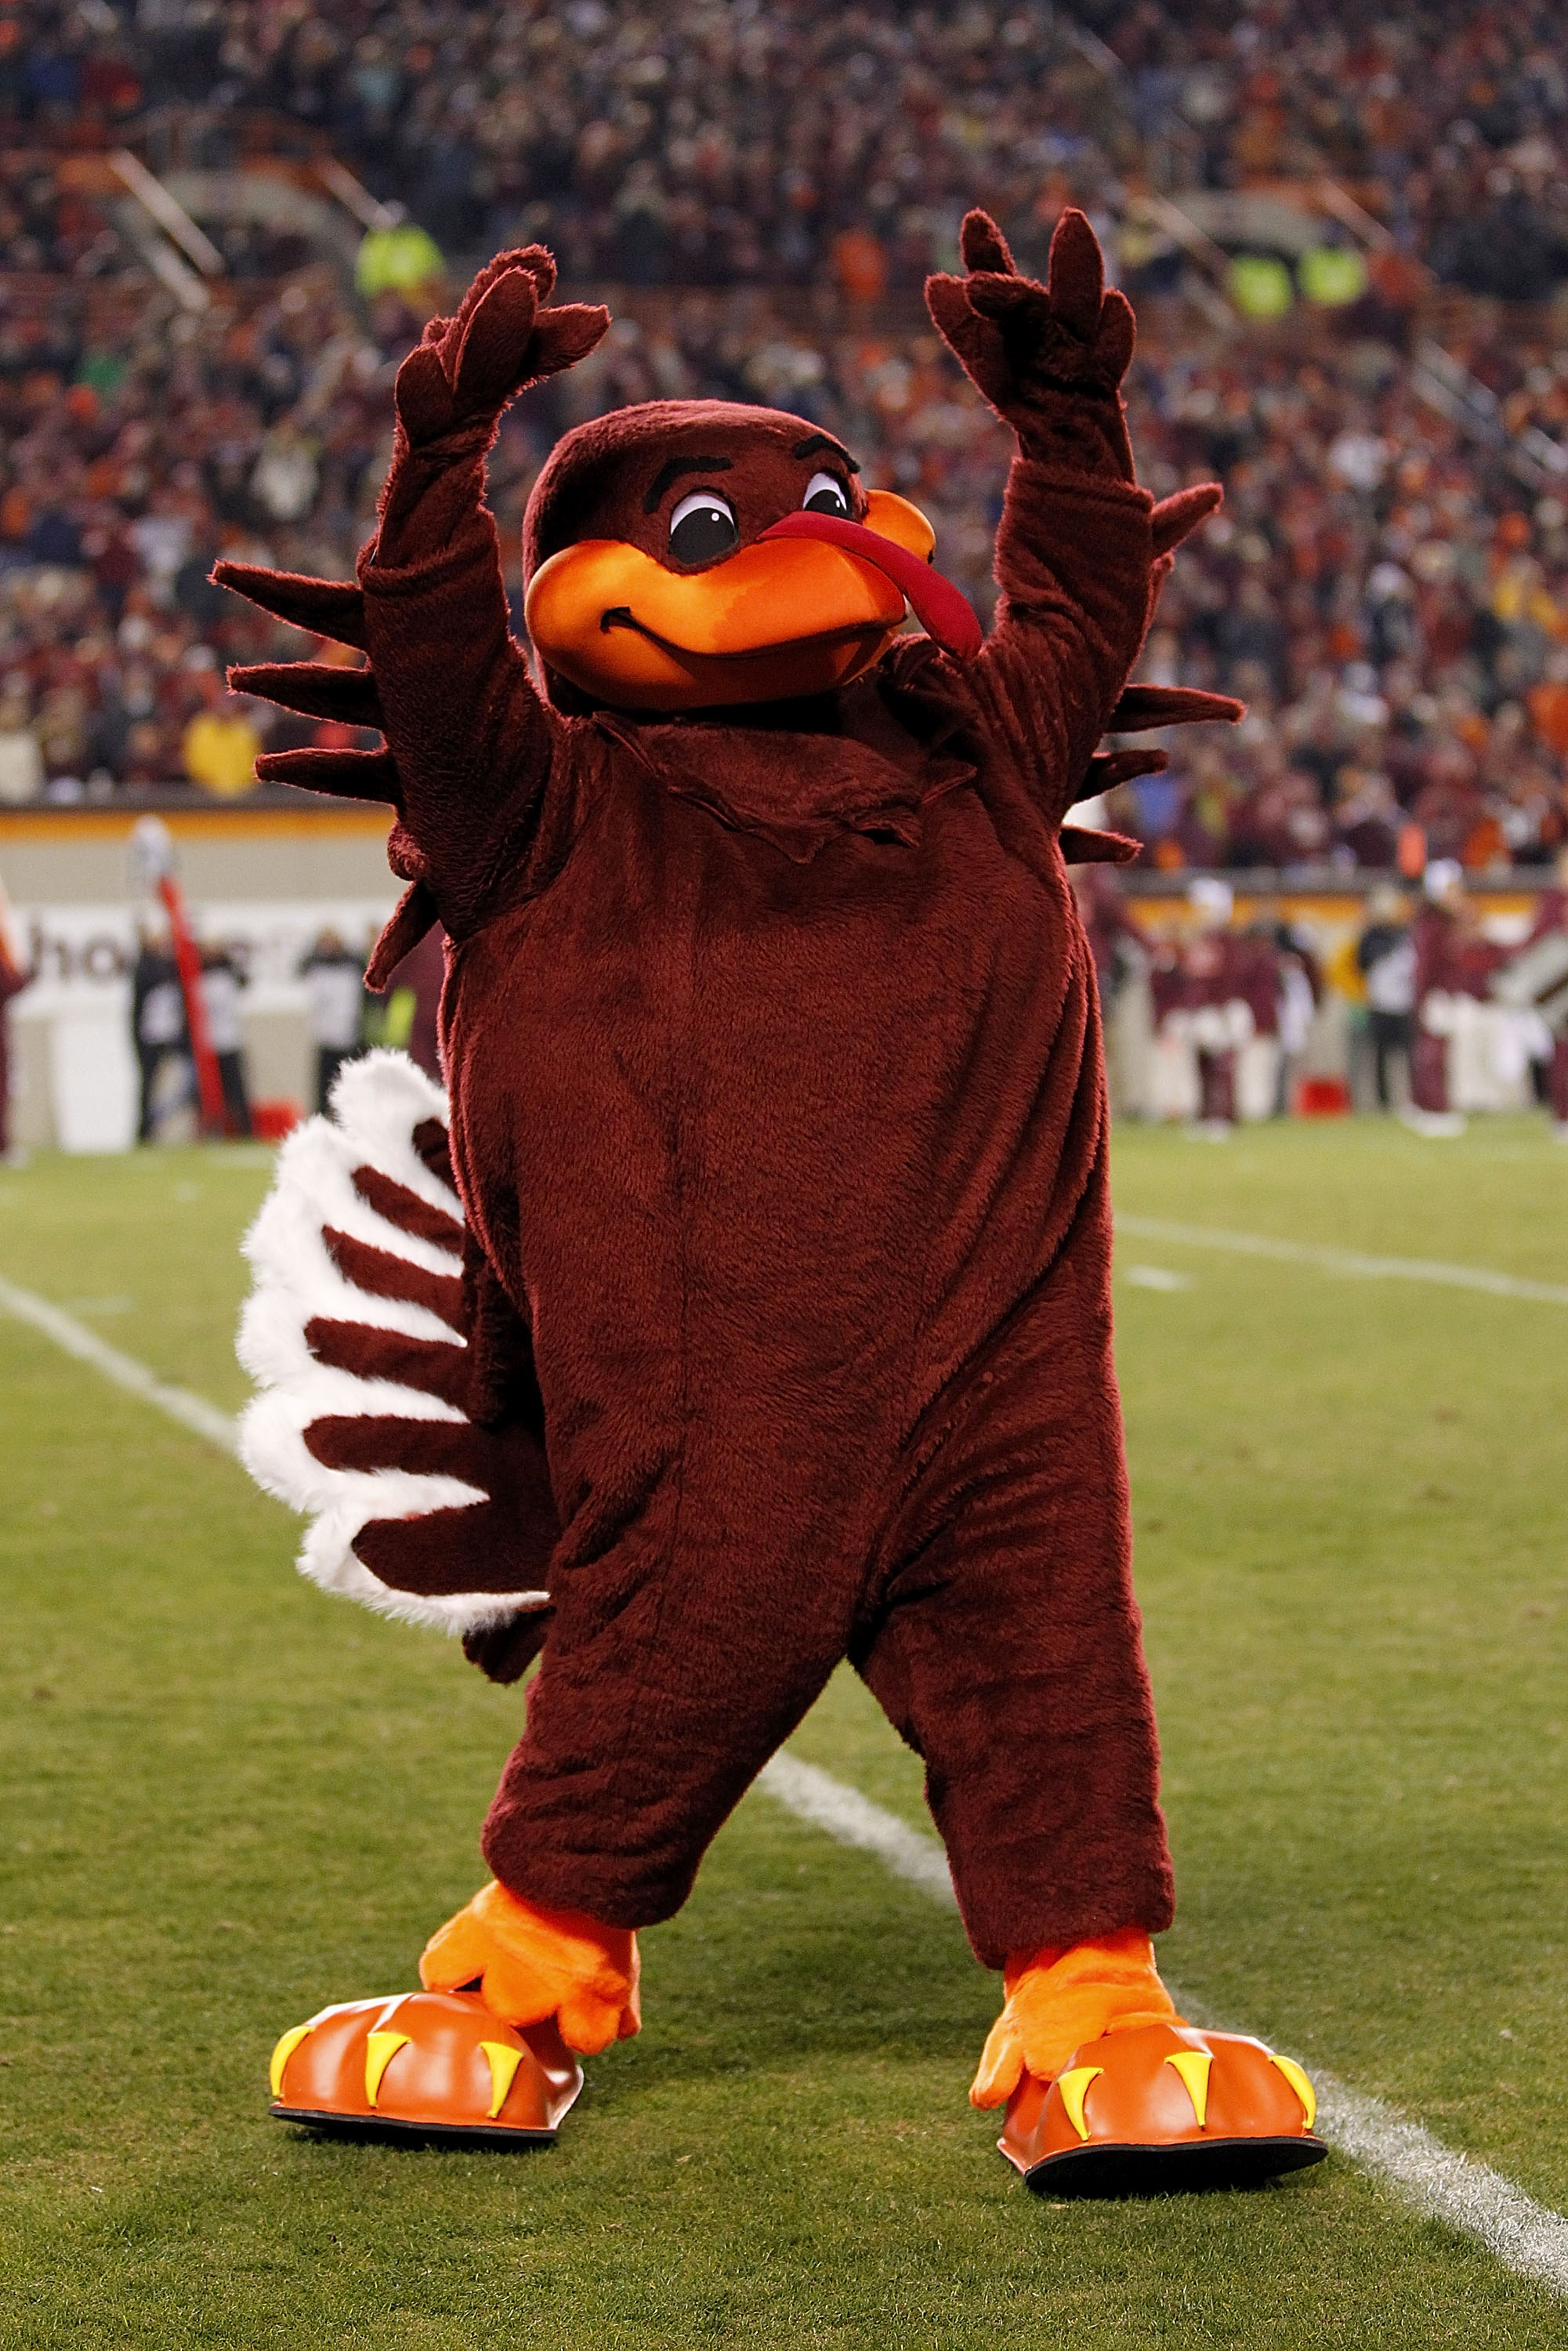 BLACKSBURG, VA - NOVEMBER 04: 'Hokie Bird', the mascot for the Virginia Tech Hokies, performs on the field against the Georgia Tech Yellow Jackets at Lane Stadium on November 4, 2010 in Blacksburg, Virginia.  (Photo by Geoff Burke/Getty Images)